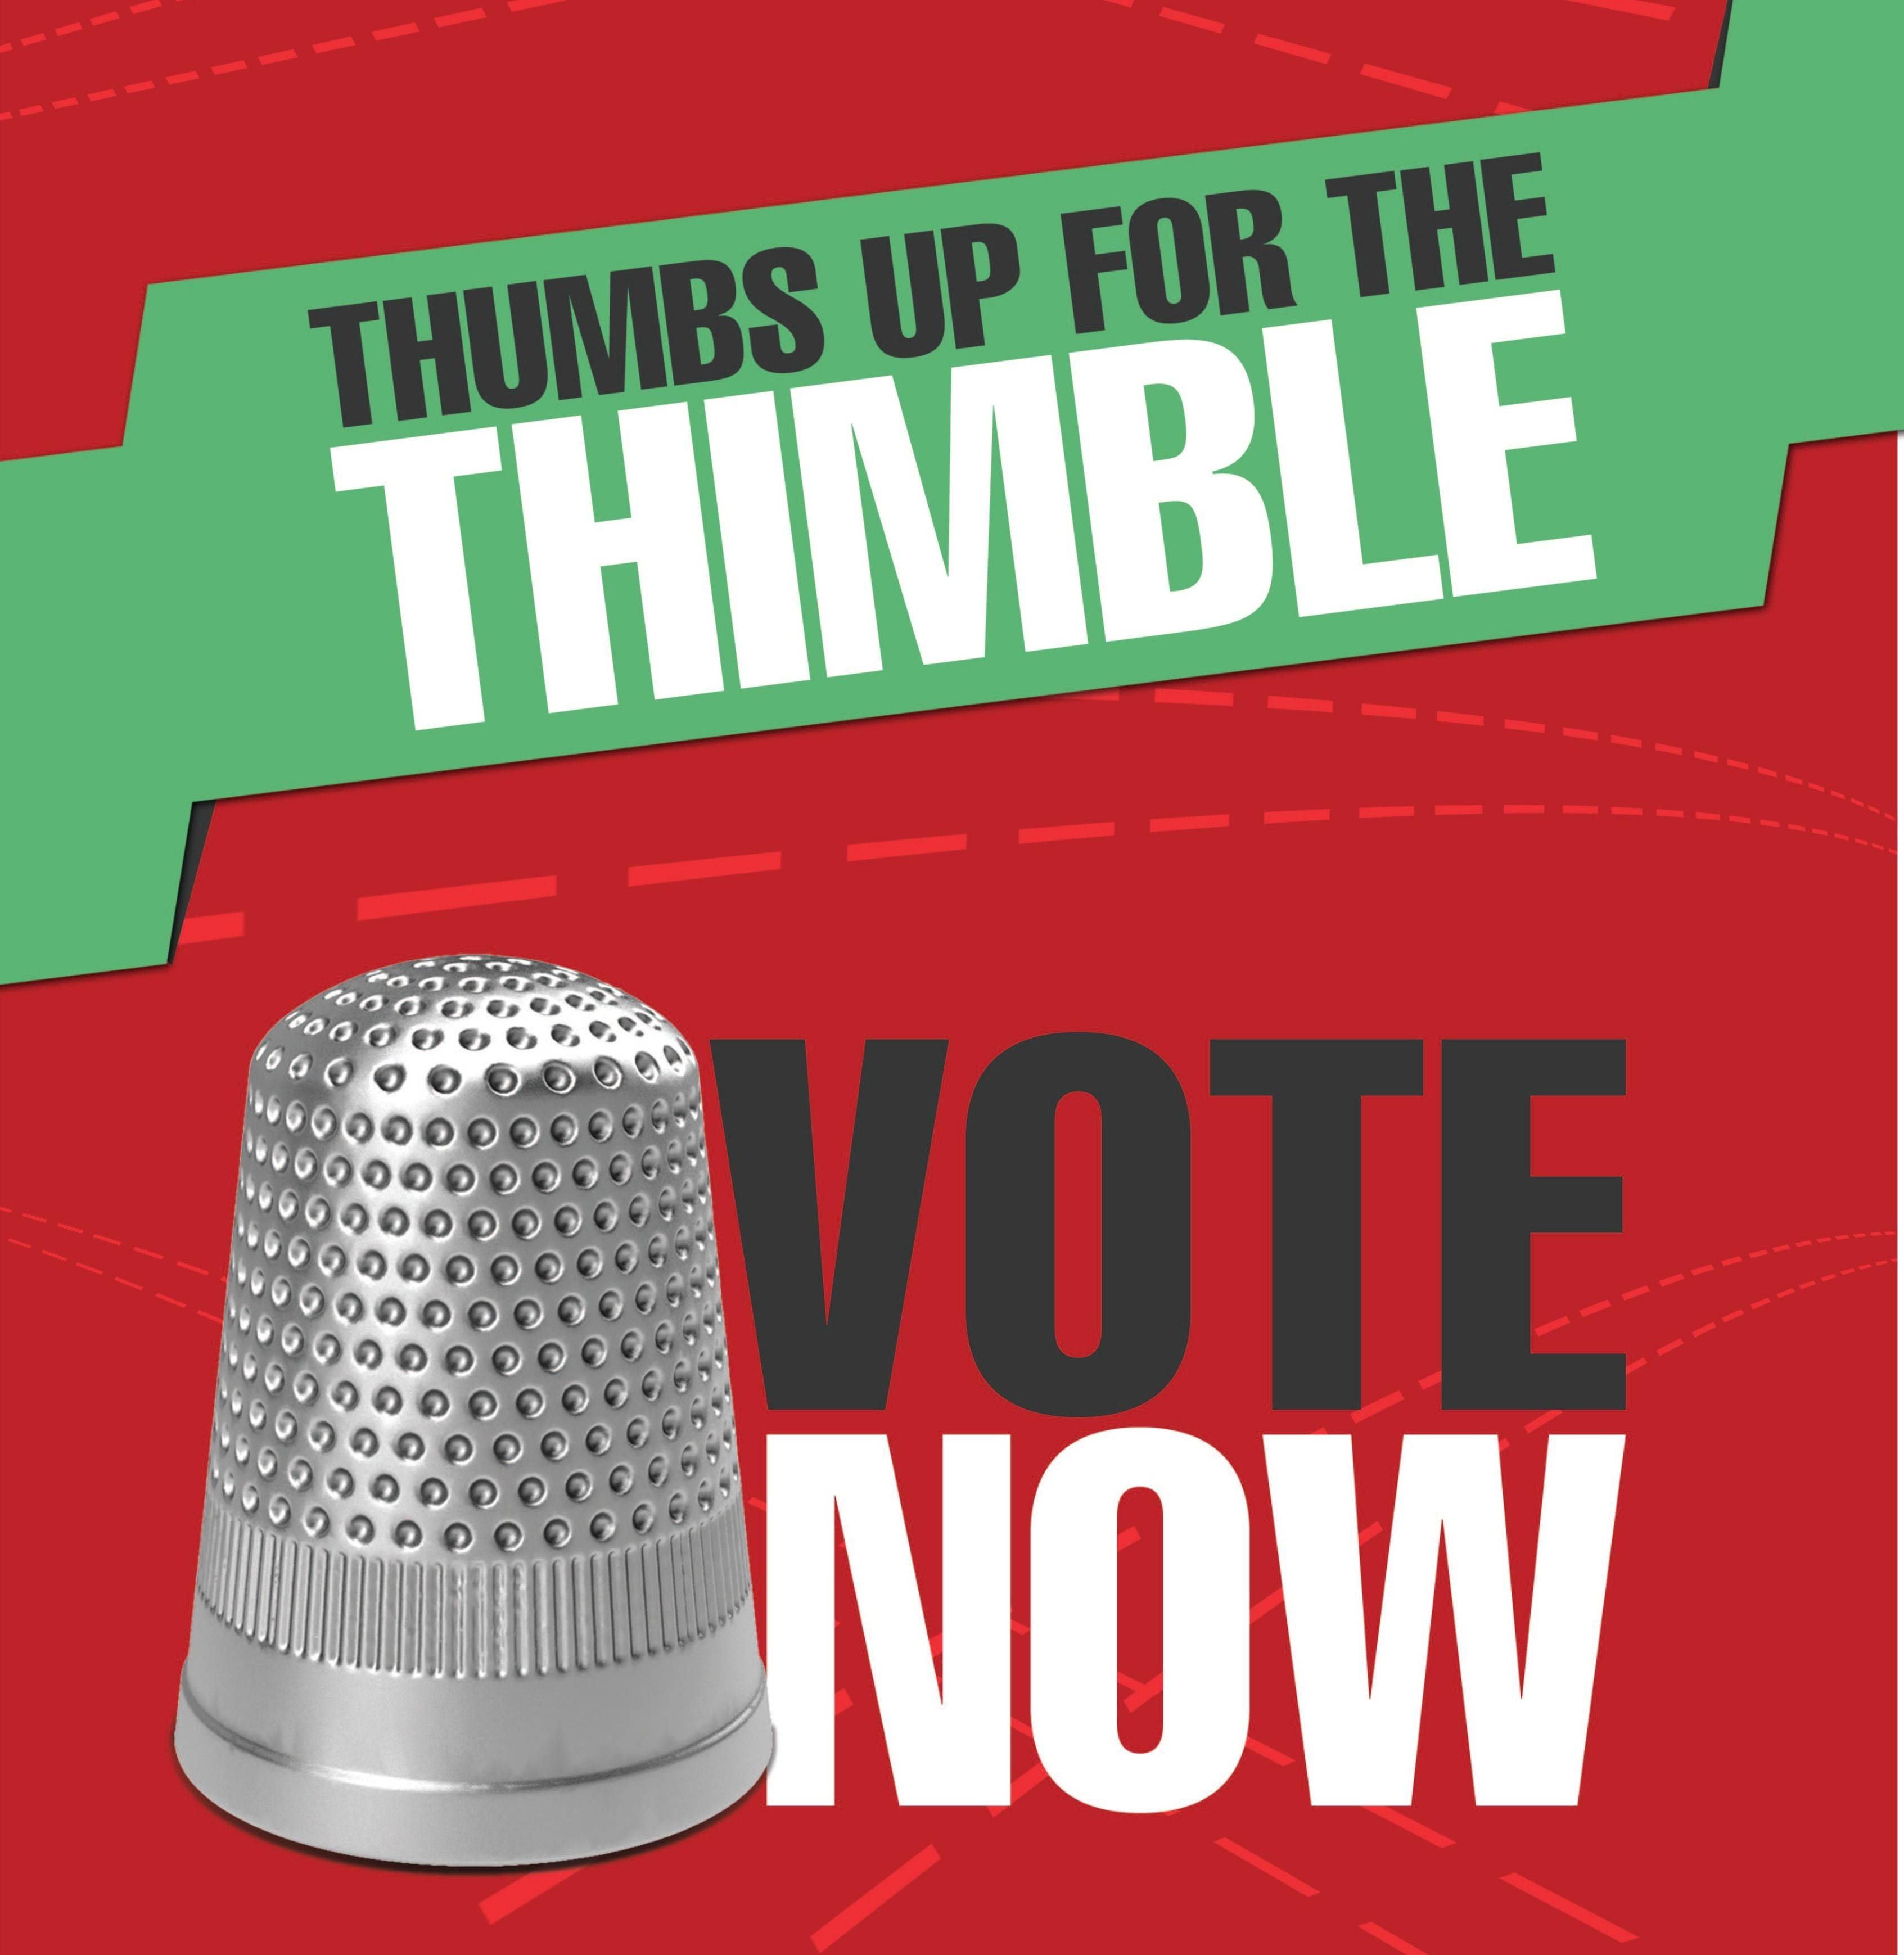 This image provided by Hasbro shows a poster encouraging people to vote for the thimble gamepiece. Hasbro allowed the public to vote on which token should be retired from its classic game Monopoly. Voting ended at midnight and results will be announced today � along with a new replacement token.